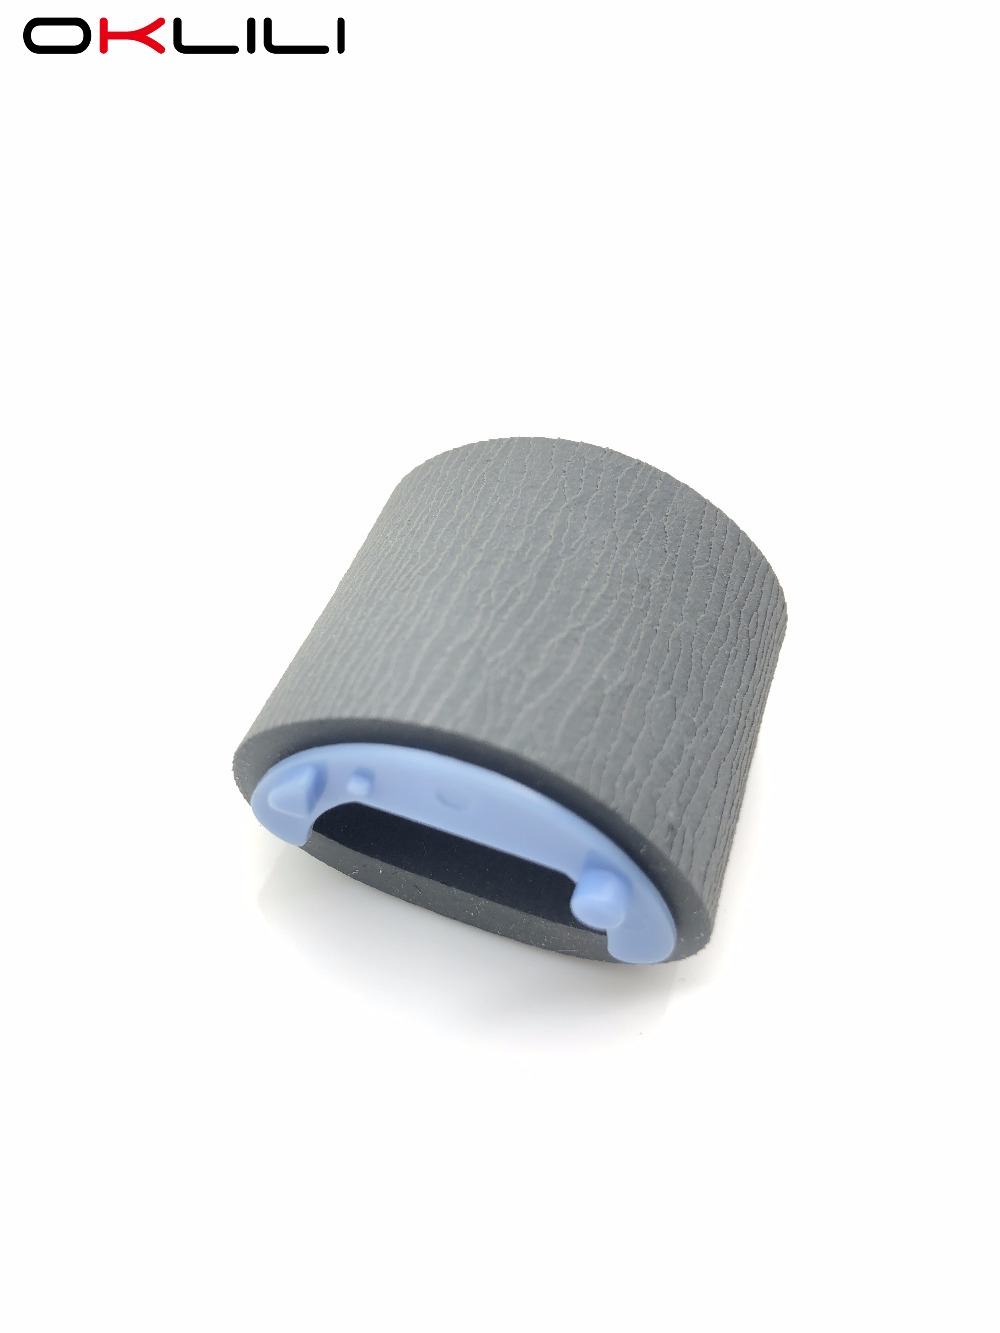 10X RL1-0266-000 RC1-2050-000 Paper Pickup Roller for HP 1010 1012 1015 1018 1020 1022 3015 3020 3030 3050 3052 3055 M1005 M1319 compatible new pick up roller for hp 1010 1020 rl1 0266 000 10 pcs per lot